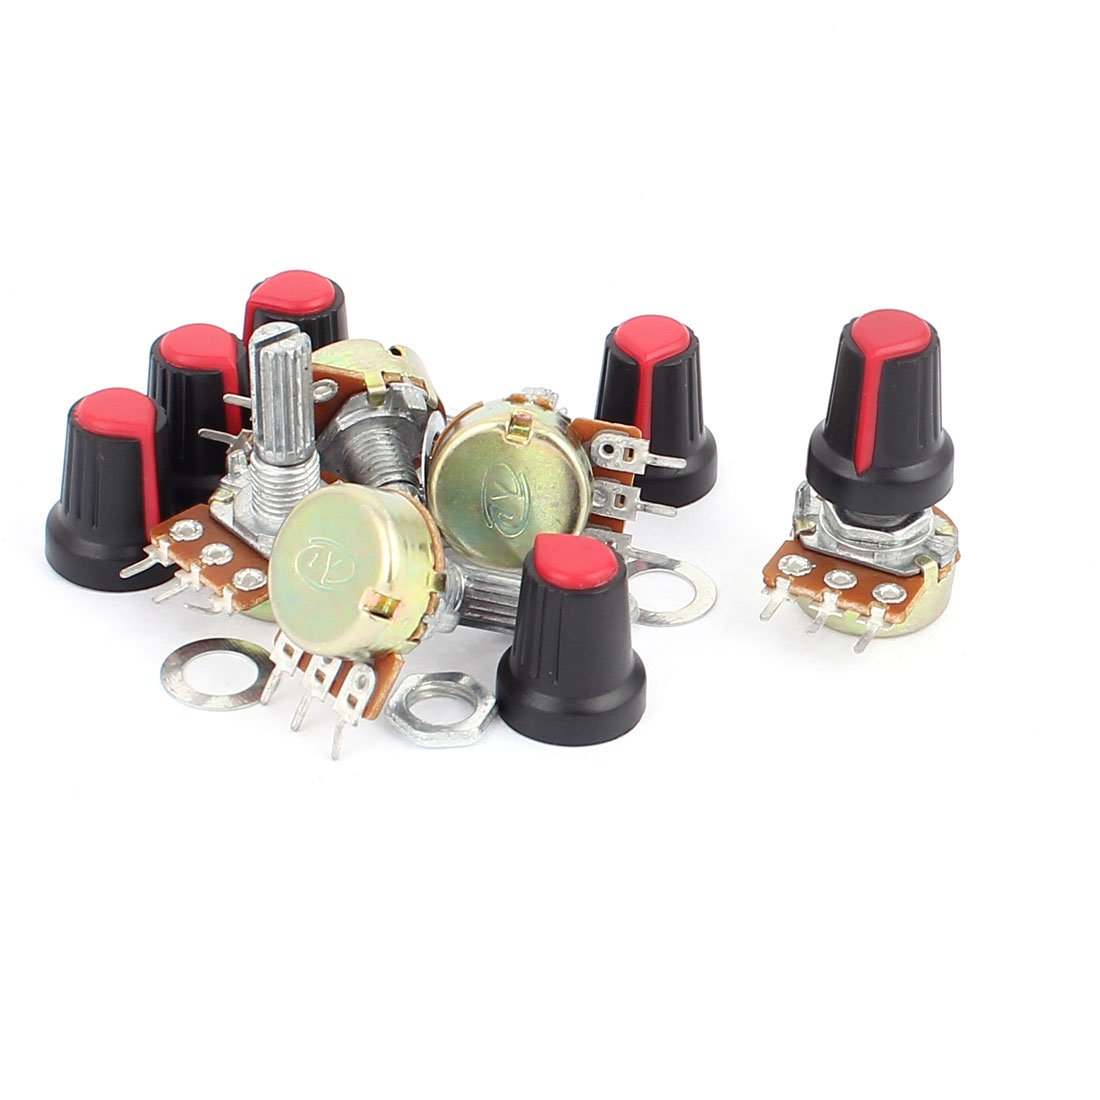 Sourcingmap 1 kOhm 20 mm Linear Rotary Shaft Audio Taper Potentiometer - Red/Black (6-Piece) a16030200ux0961